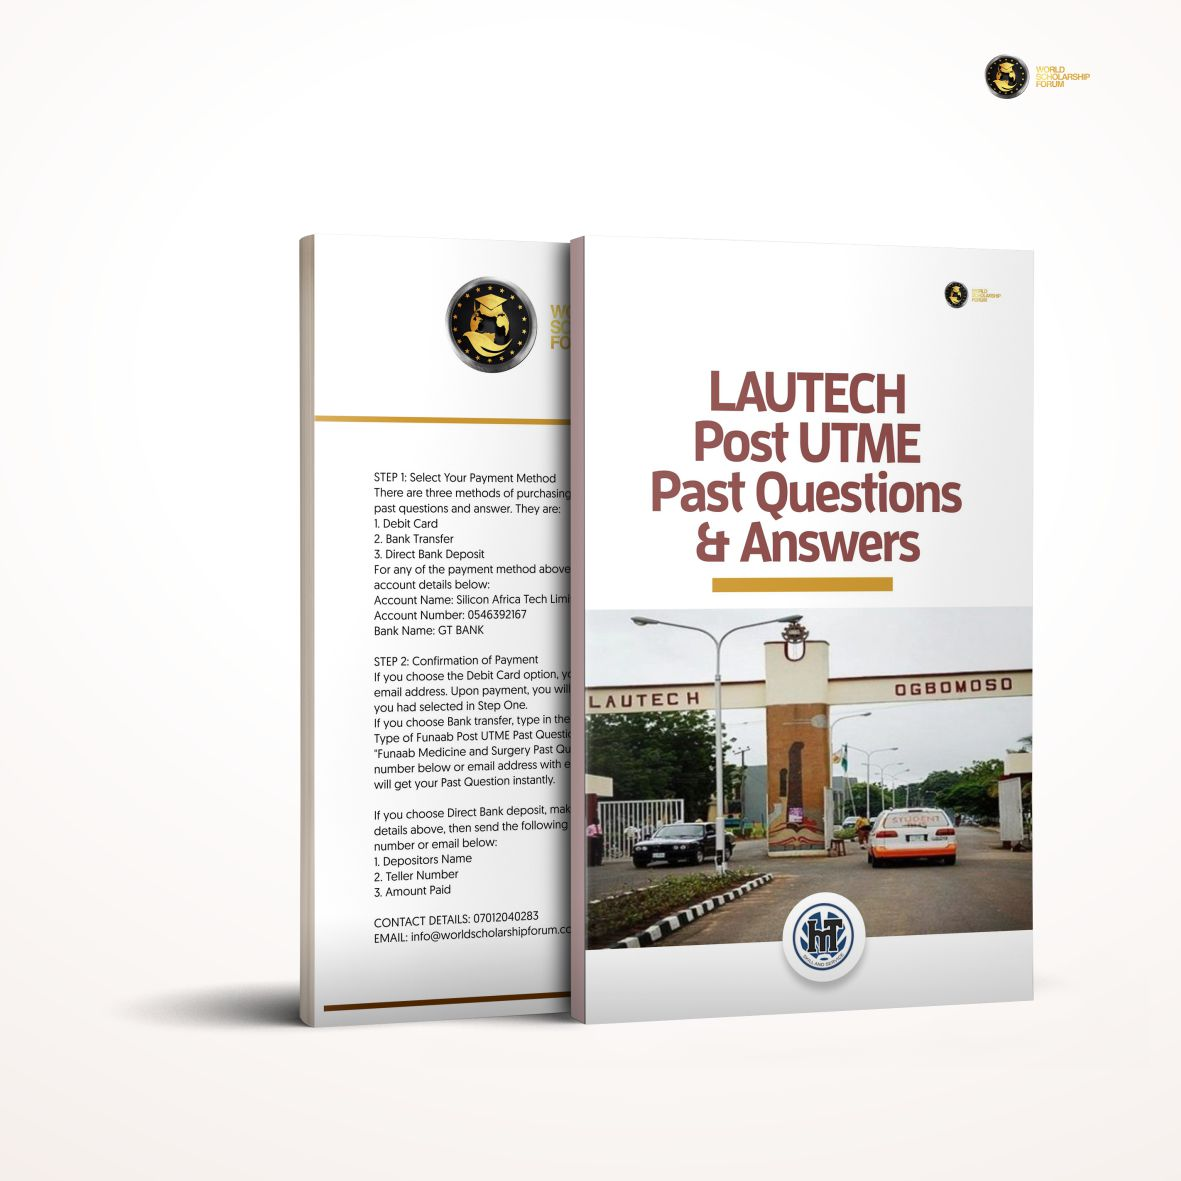 LAUTECH -post-utme-past-questions-answers